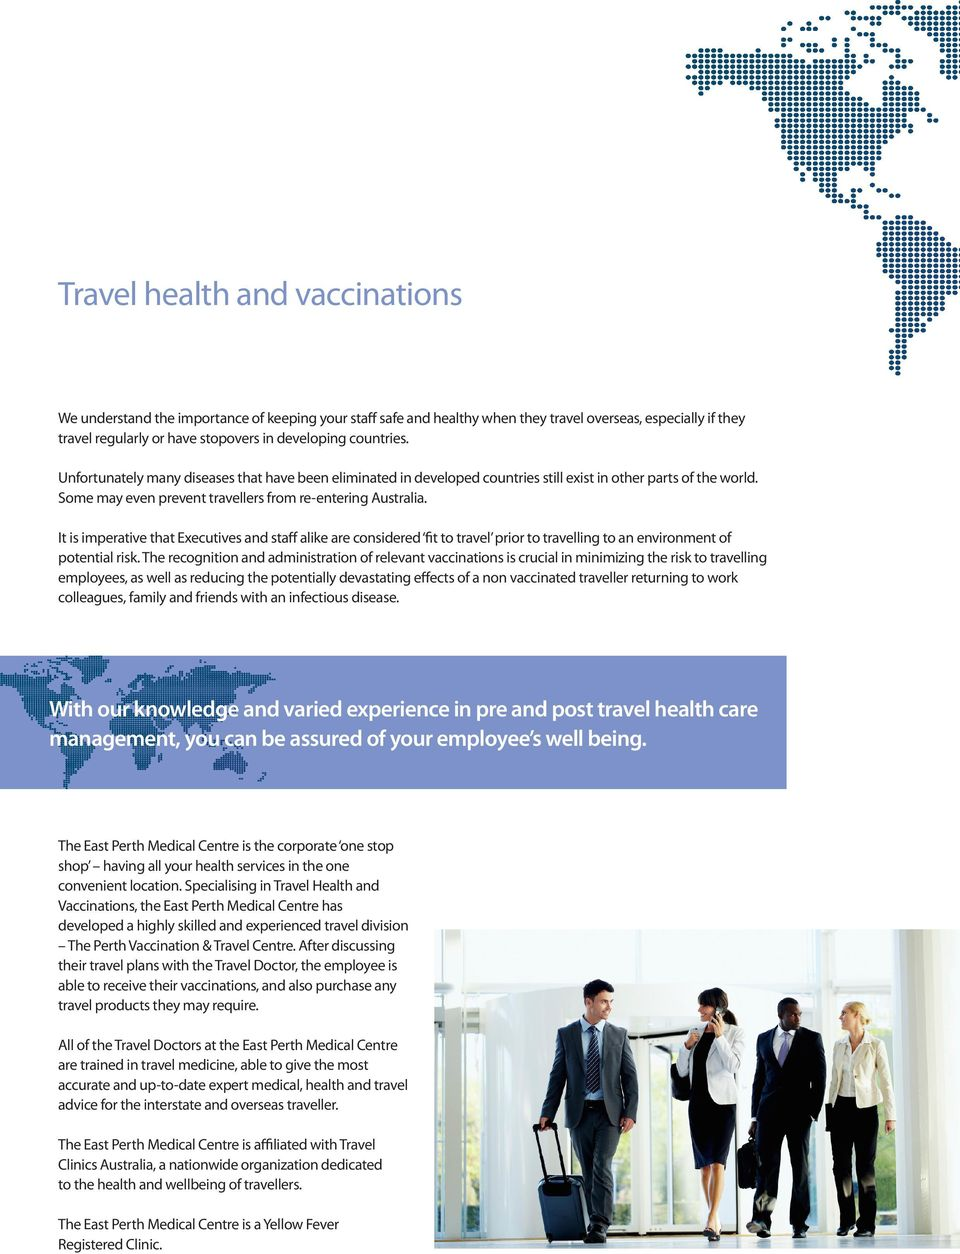 It is imperative that Executives and staff alike are considered fit to travel prior to travelling to an environment of potential risk.